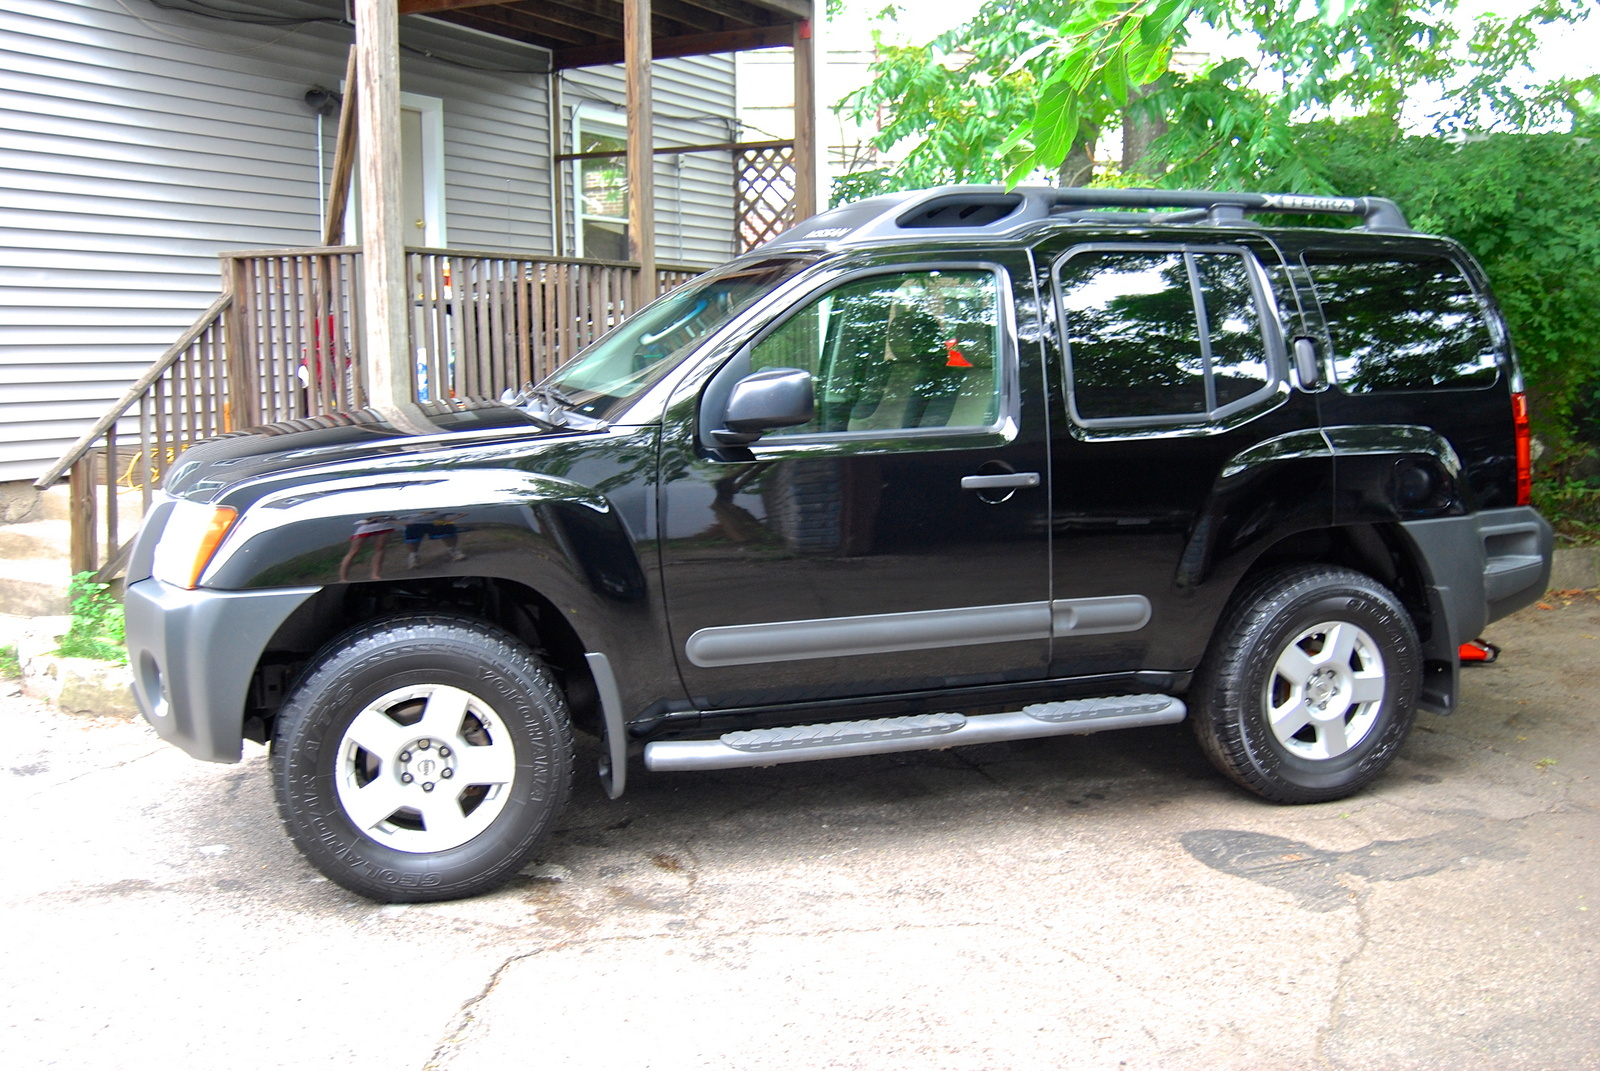 Used Nissan Pathfinder Reviews Picture of 2005 Nissan Xterra S, exterior